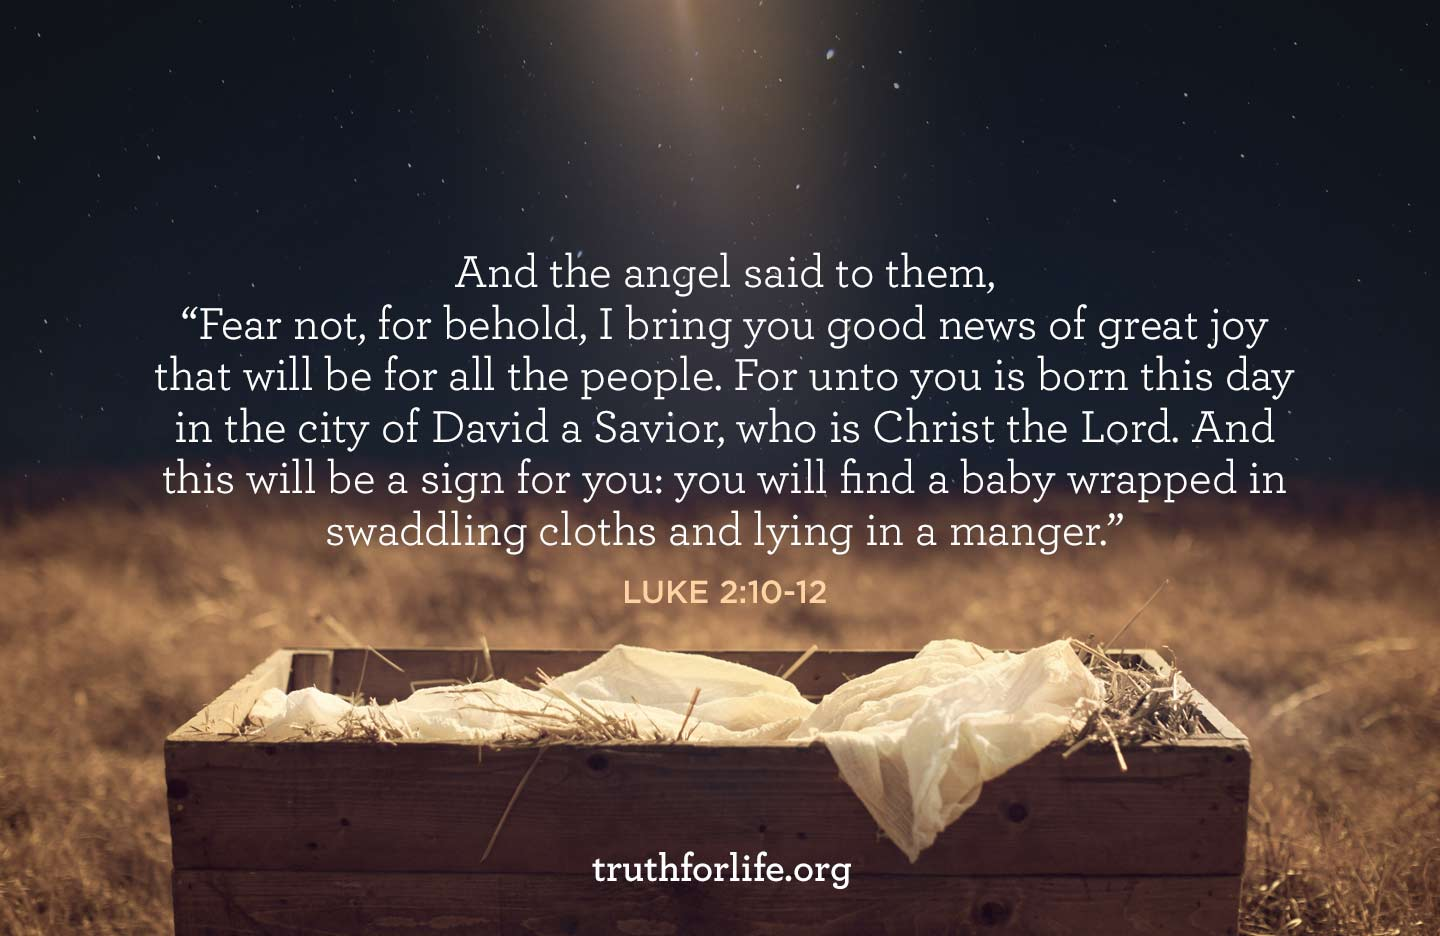 And the angel said to them, 'Fear not, for behold, I bring you good news of great joy that will be for all the people. For unto you is born this day in the city of David a Savior, who is Christ the Lord. And this will be a sign for you: you will find a baby wrapped in swaddling cloths and lying in a manger.' - Luke 2:10-12